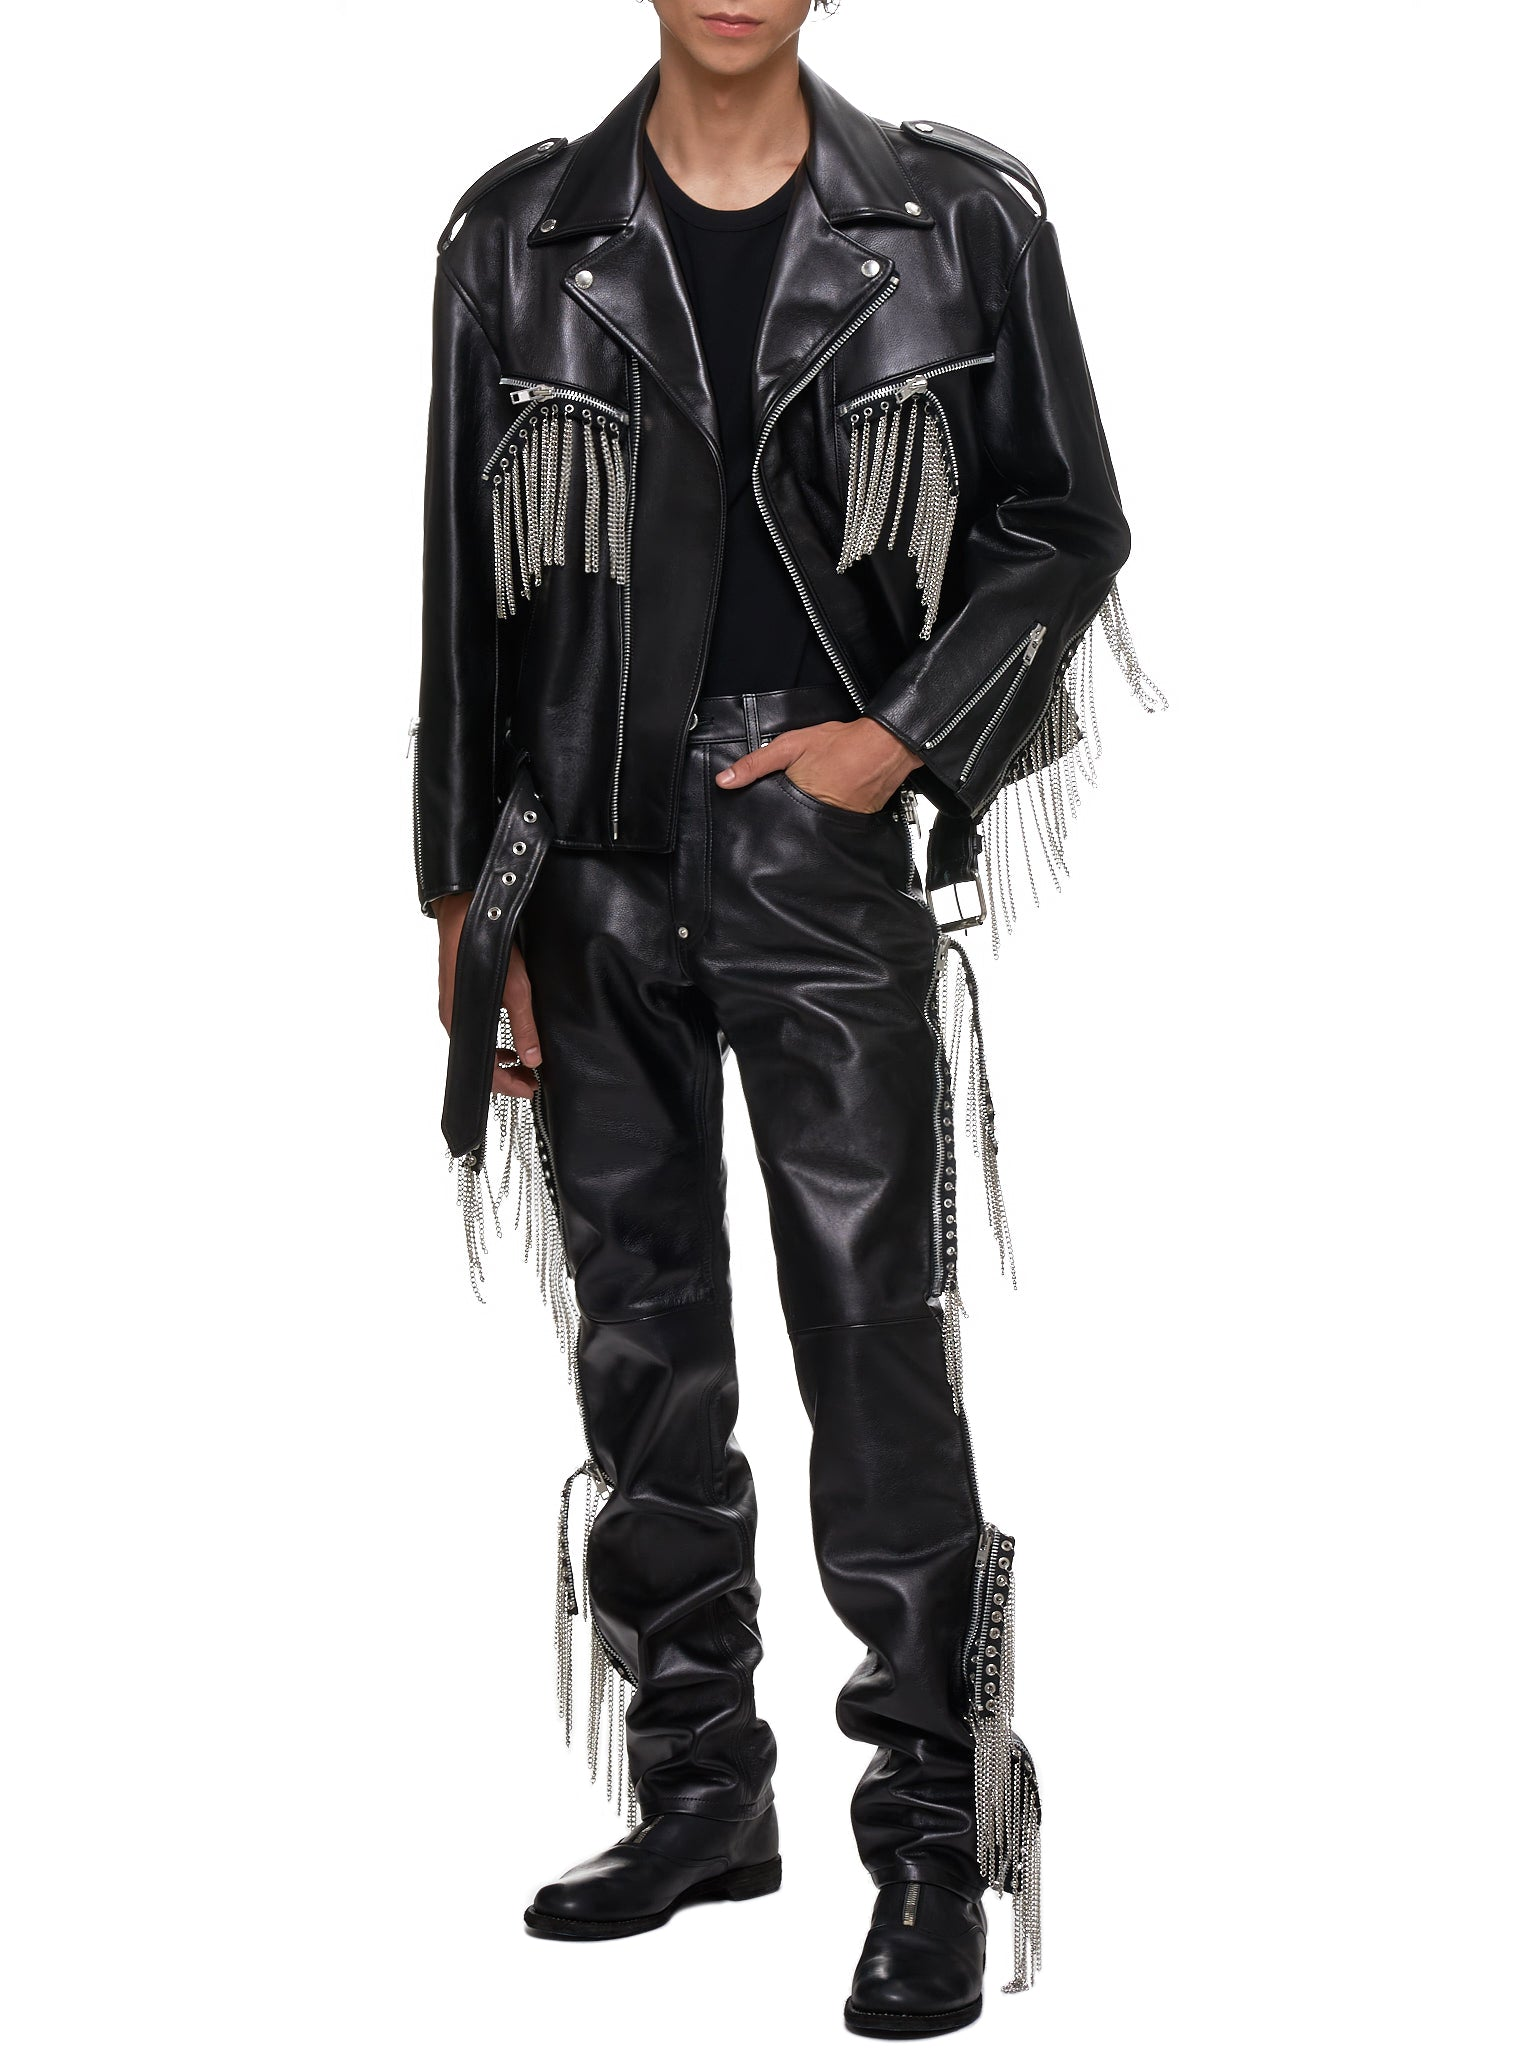 John Lawrence Sullivan Leather Jacket - Hlorenzo Style